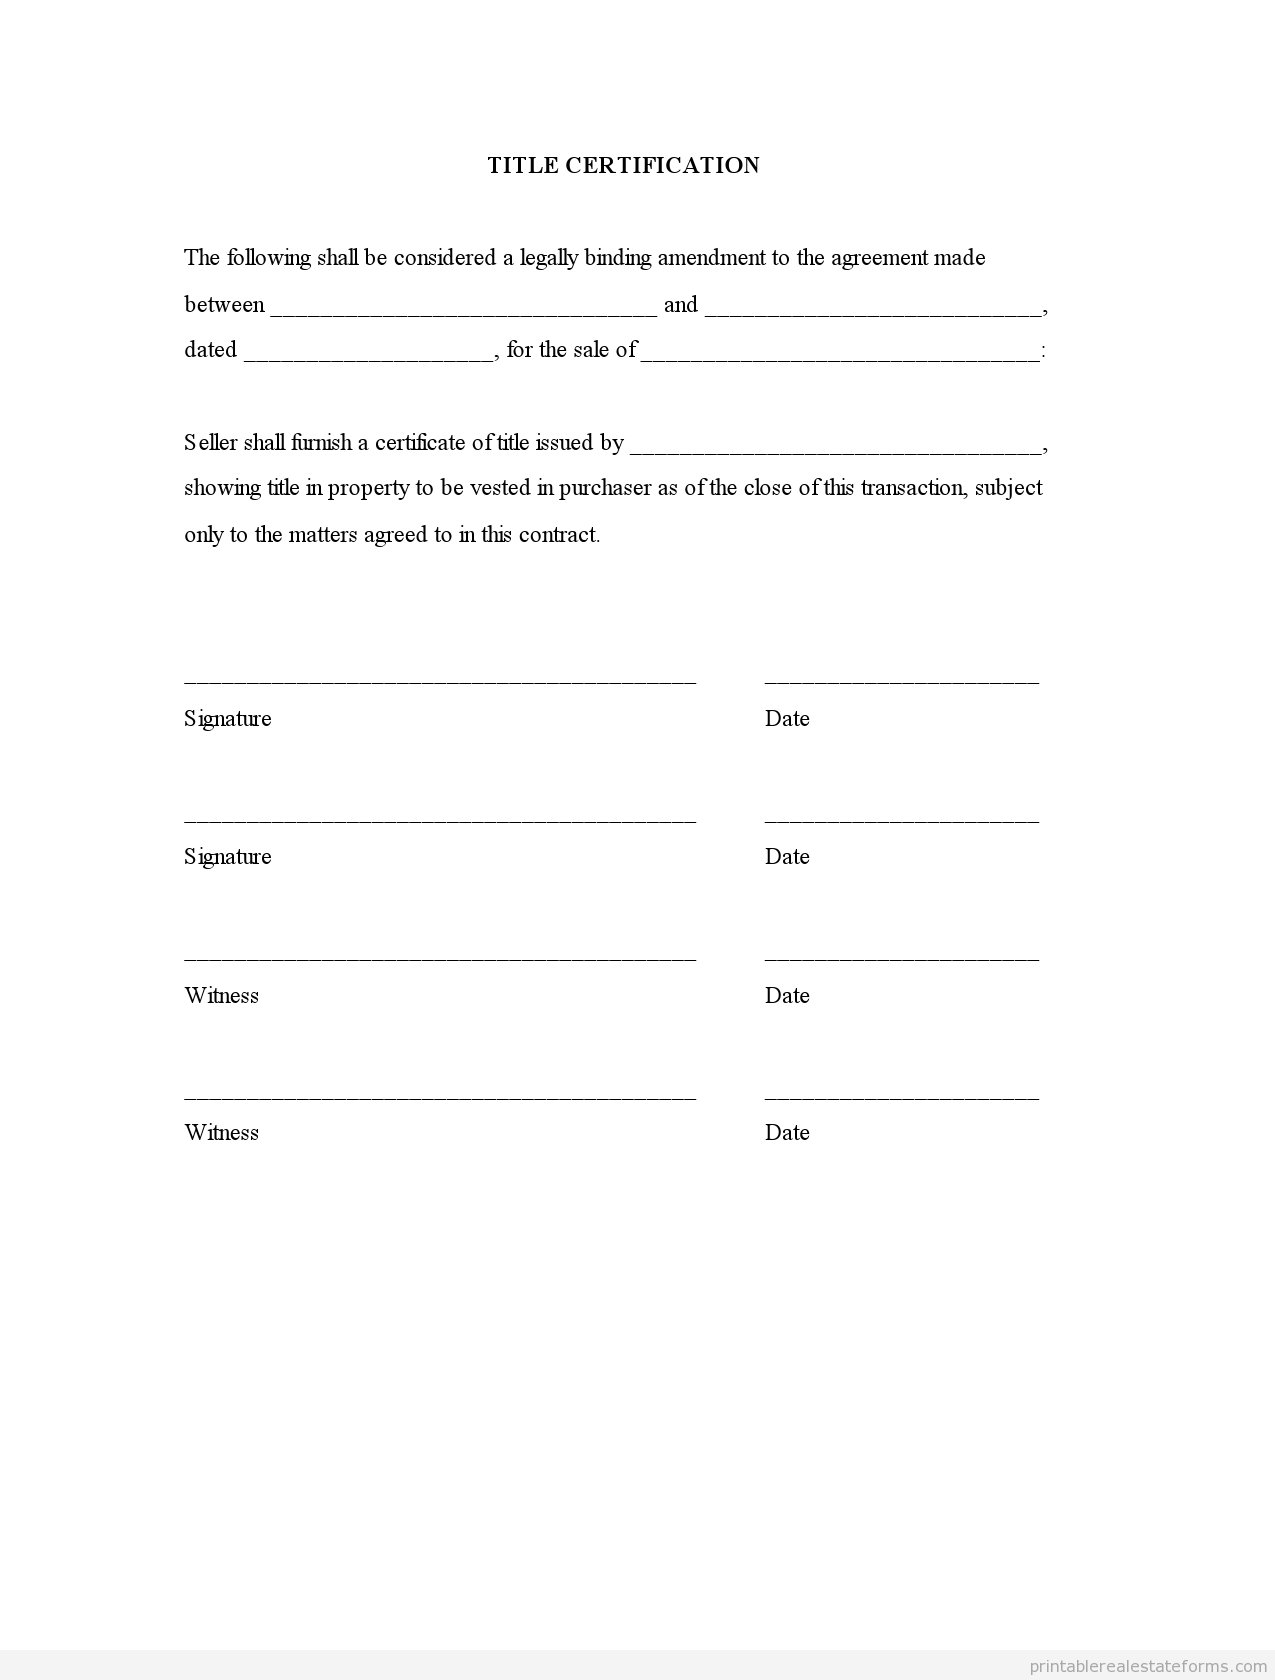 Sample Printable Title Certification Form  Printable Real Estate